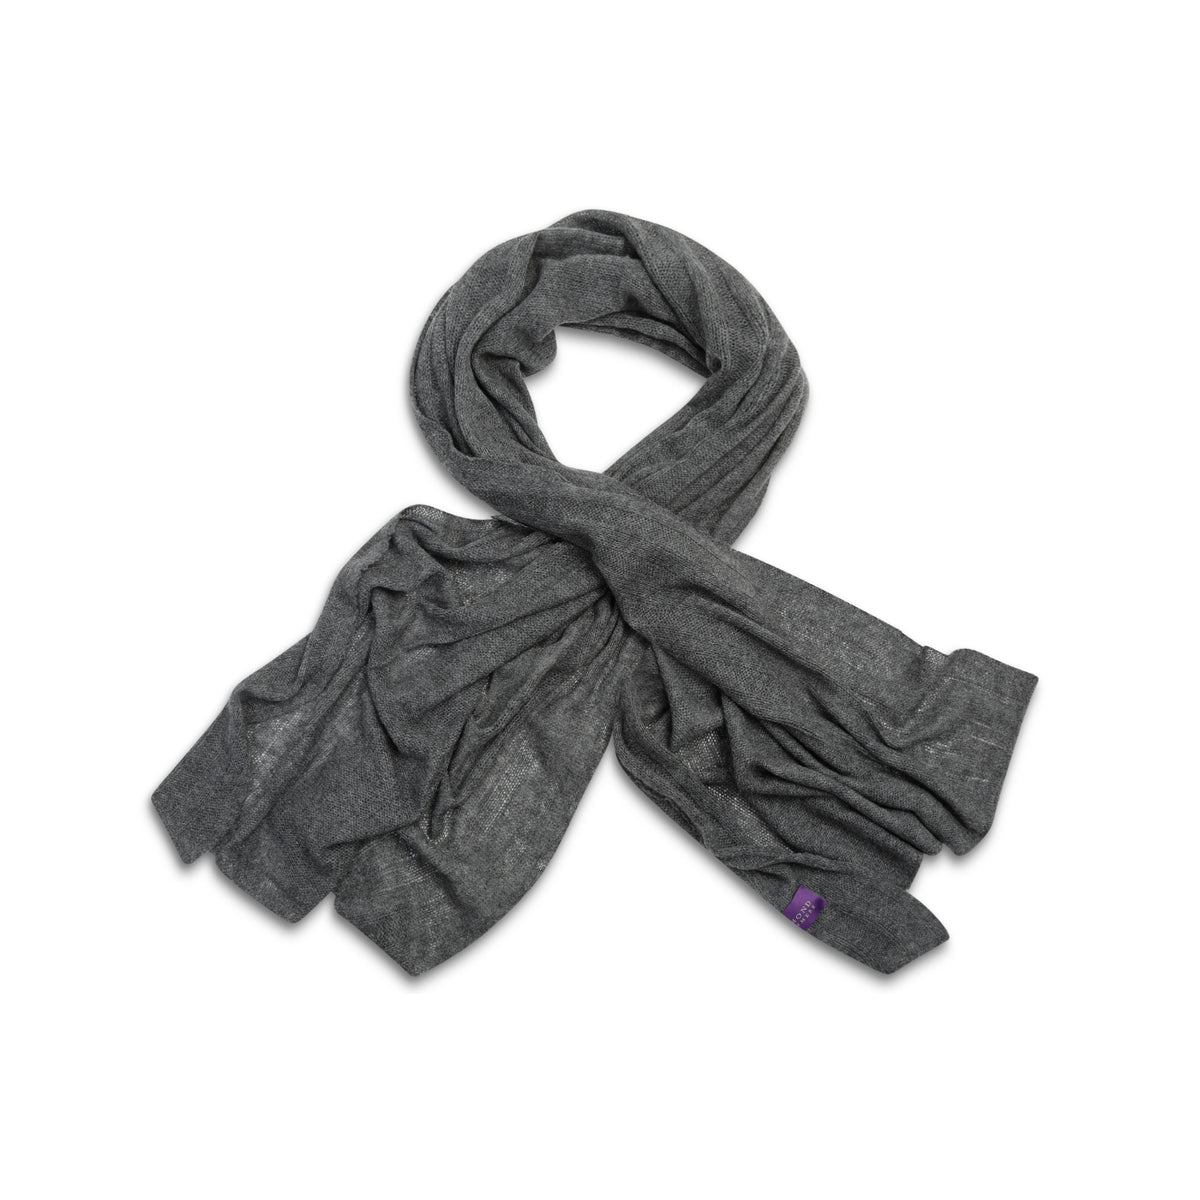 Charcoal Grey | Knitted Cashmere Stole | Knitted Cashmere Scarf | Shop at The Cashmere Choice | London